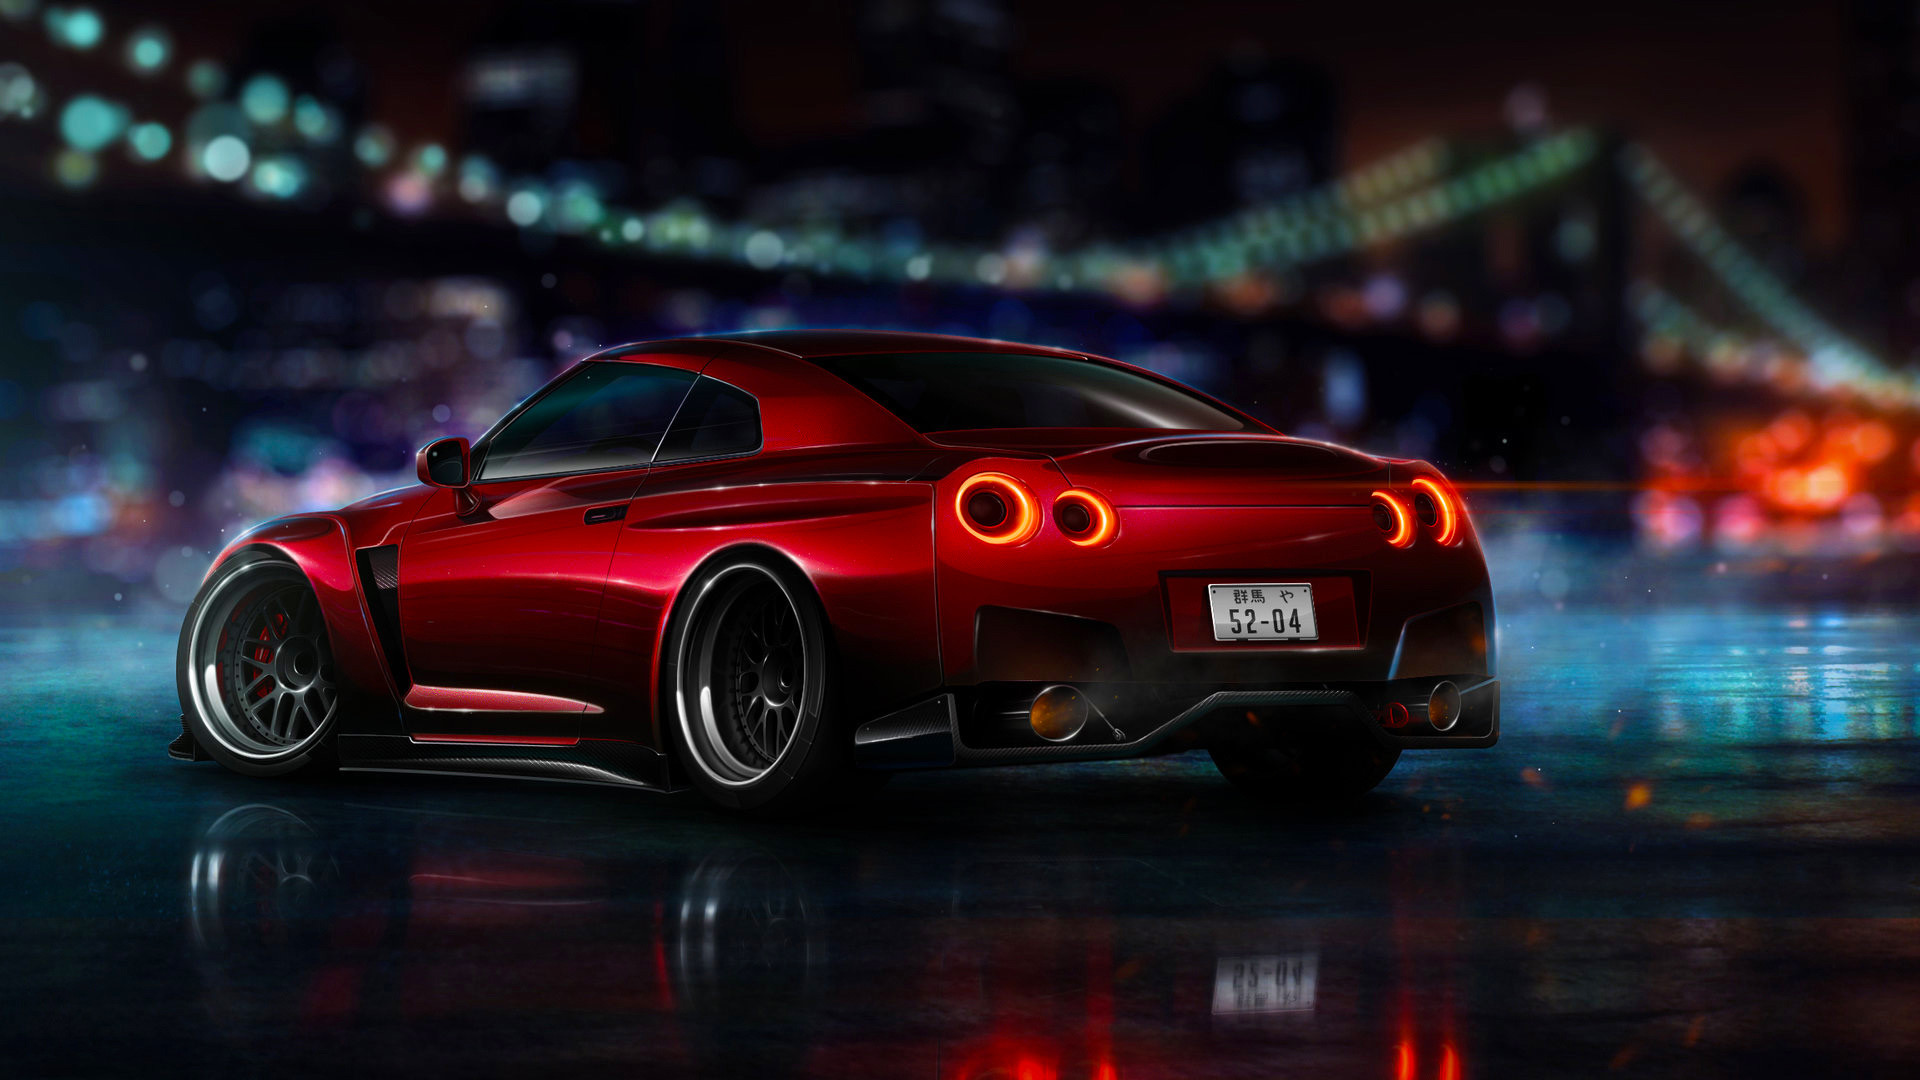 Nissan gtr wallpapers 73 images 2048x1360 nissan gtr nismo high quality wallpaper desktop wallpapers hd 4k windows 10 mac apple colourful images backgrounds free 20481360 wallpaper hd voltagebd Choice Image